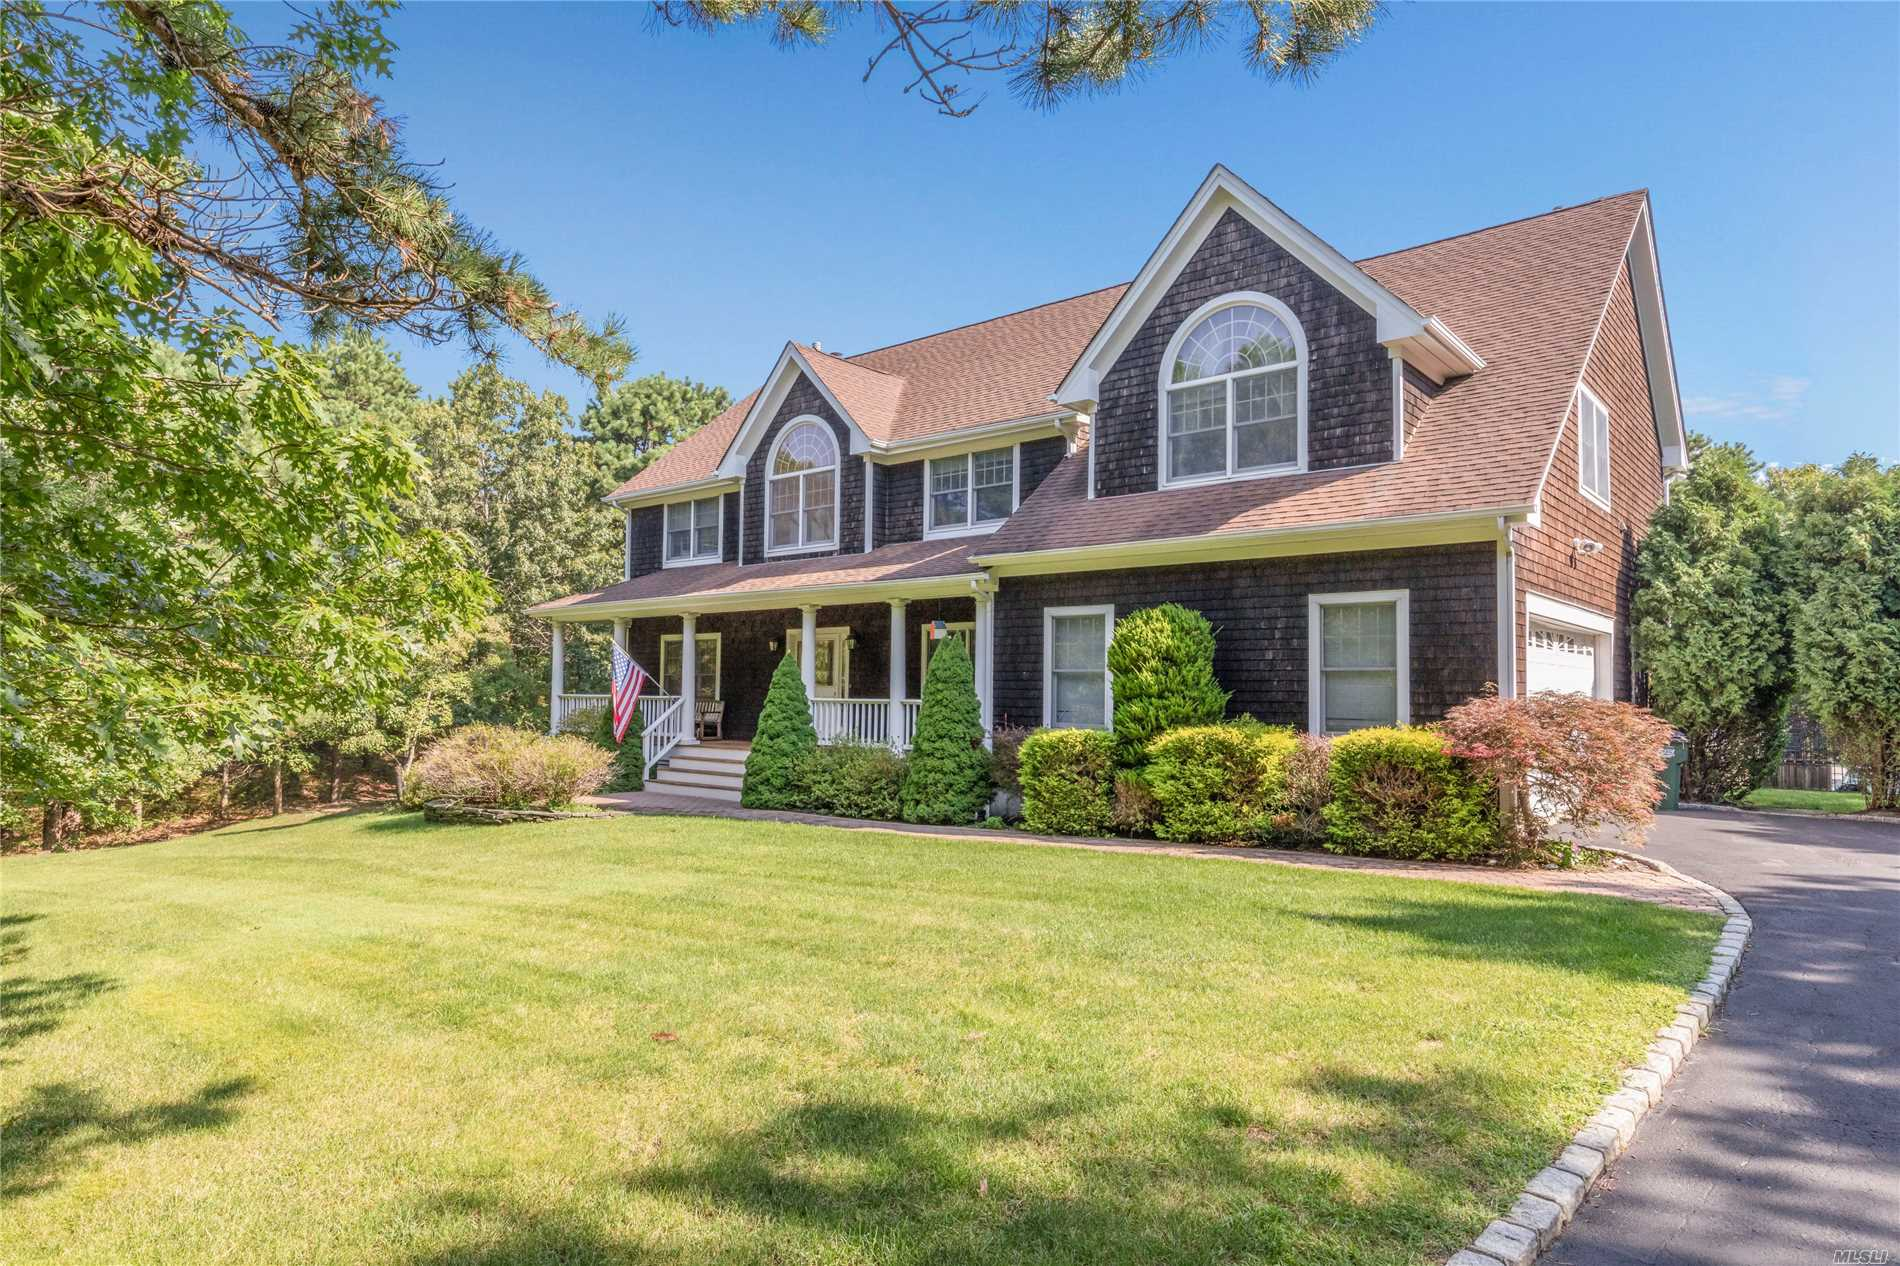 Photo of home for sale at 75 Corbett Dr, East Quogue NY